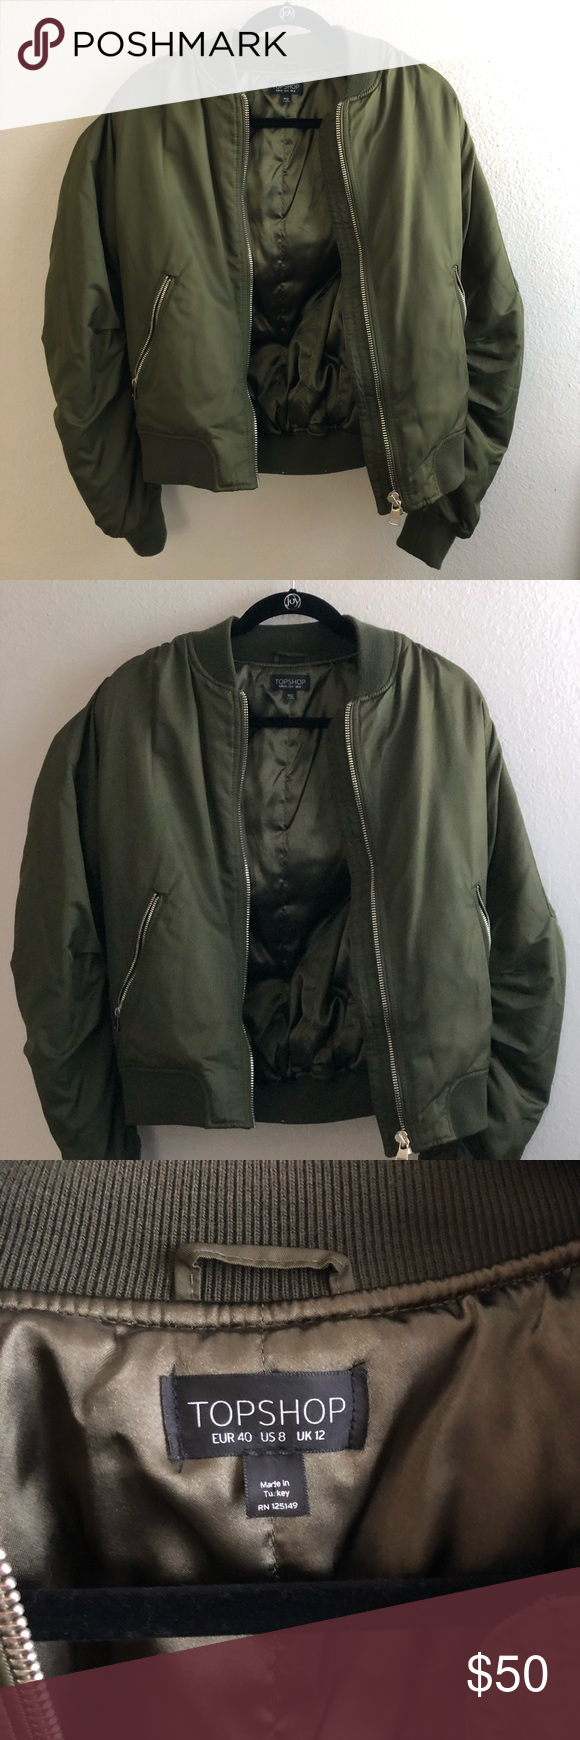 Topshop Army Green Bomber Jacket Army Green Bomber Jacket Green Bomber Jacket Bomber Jacket [ 1740 x 580 Pixel ]